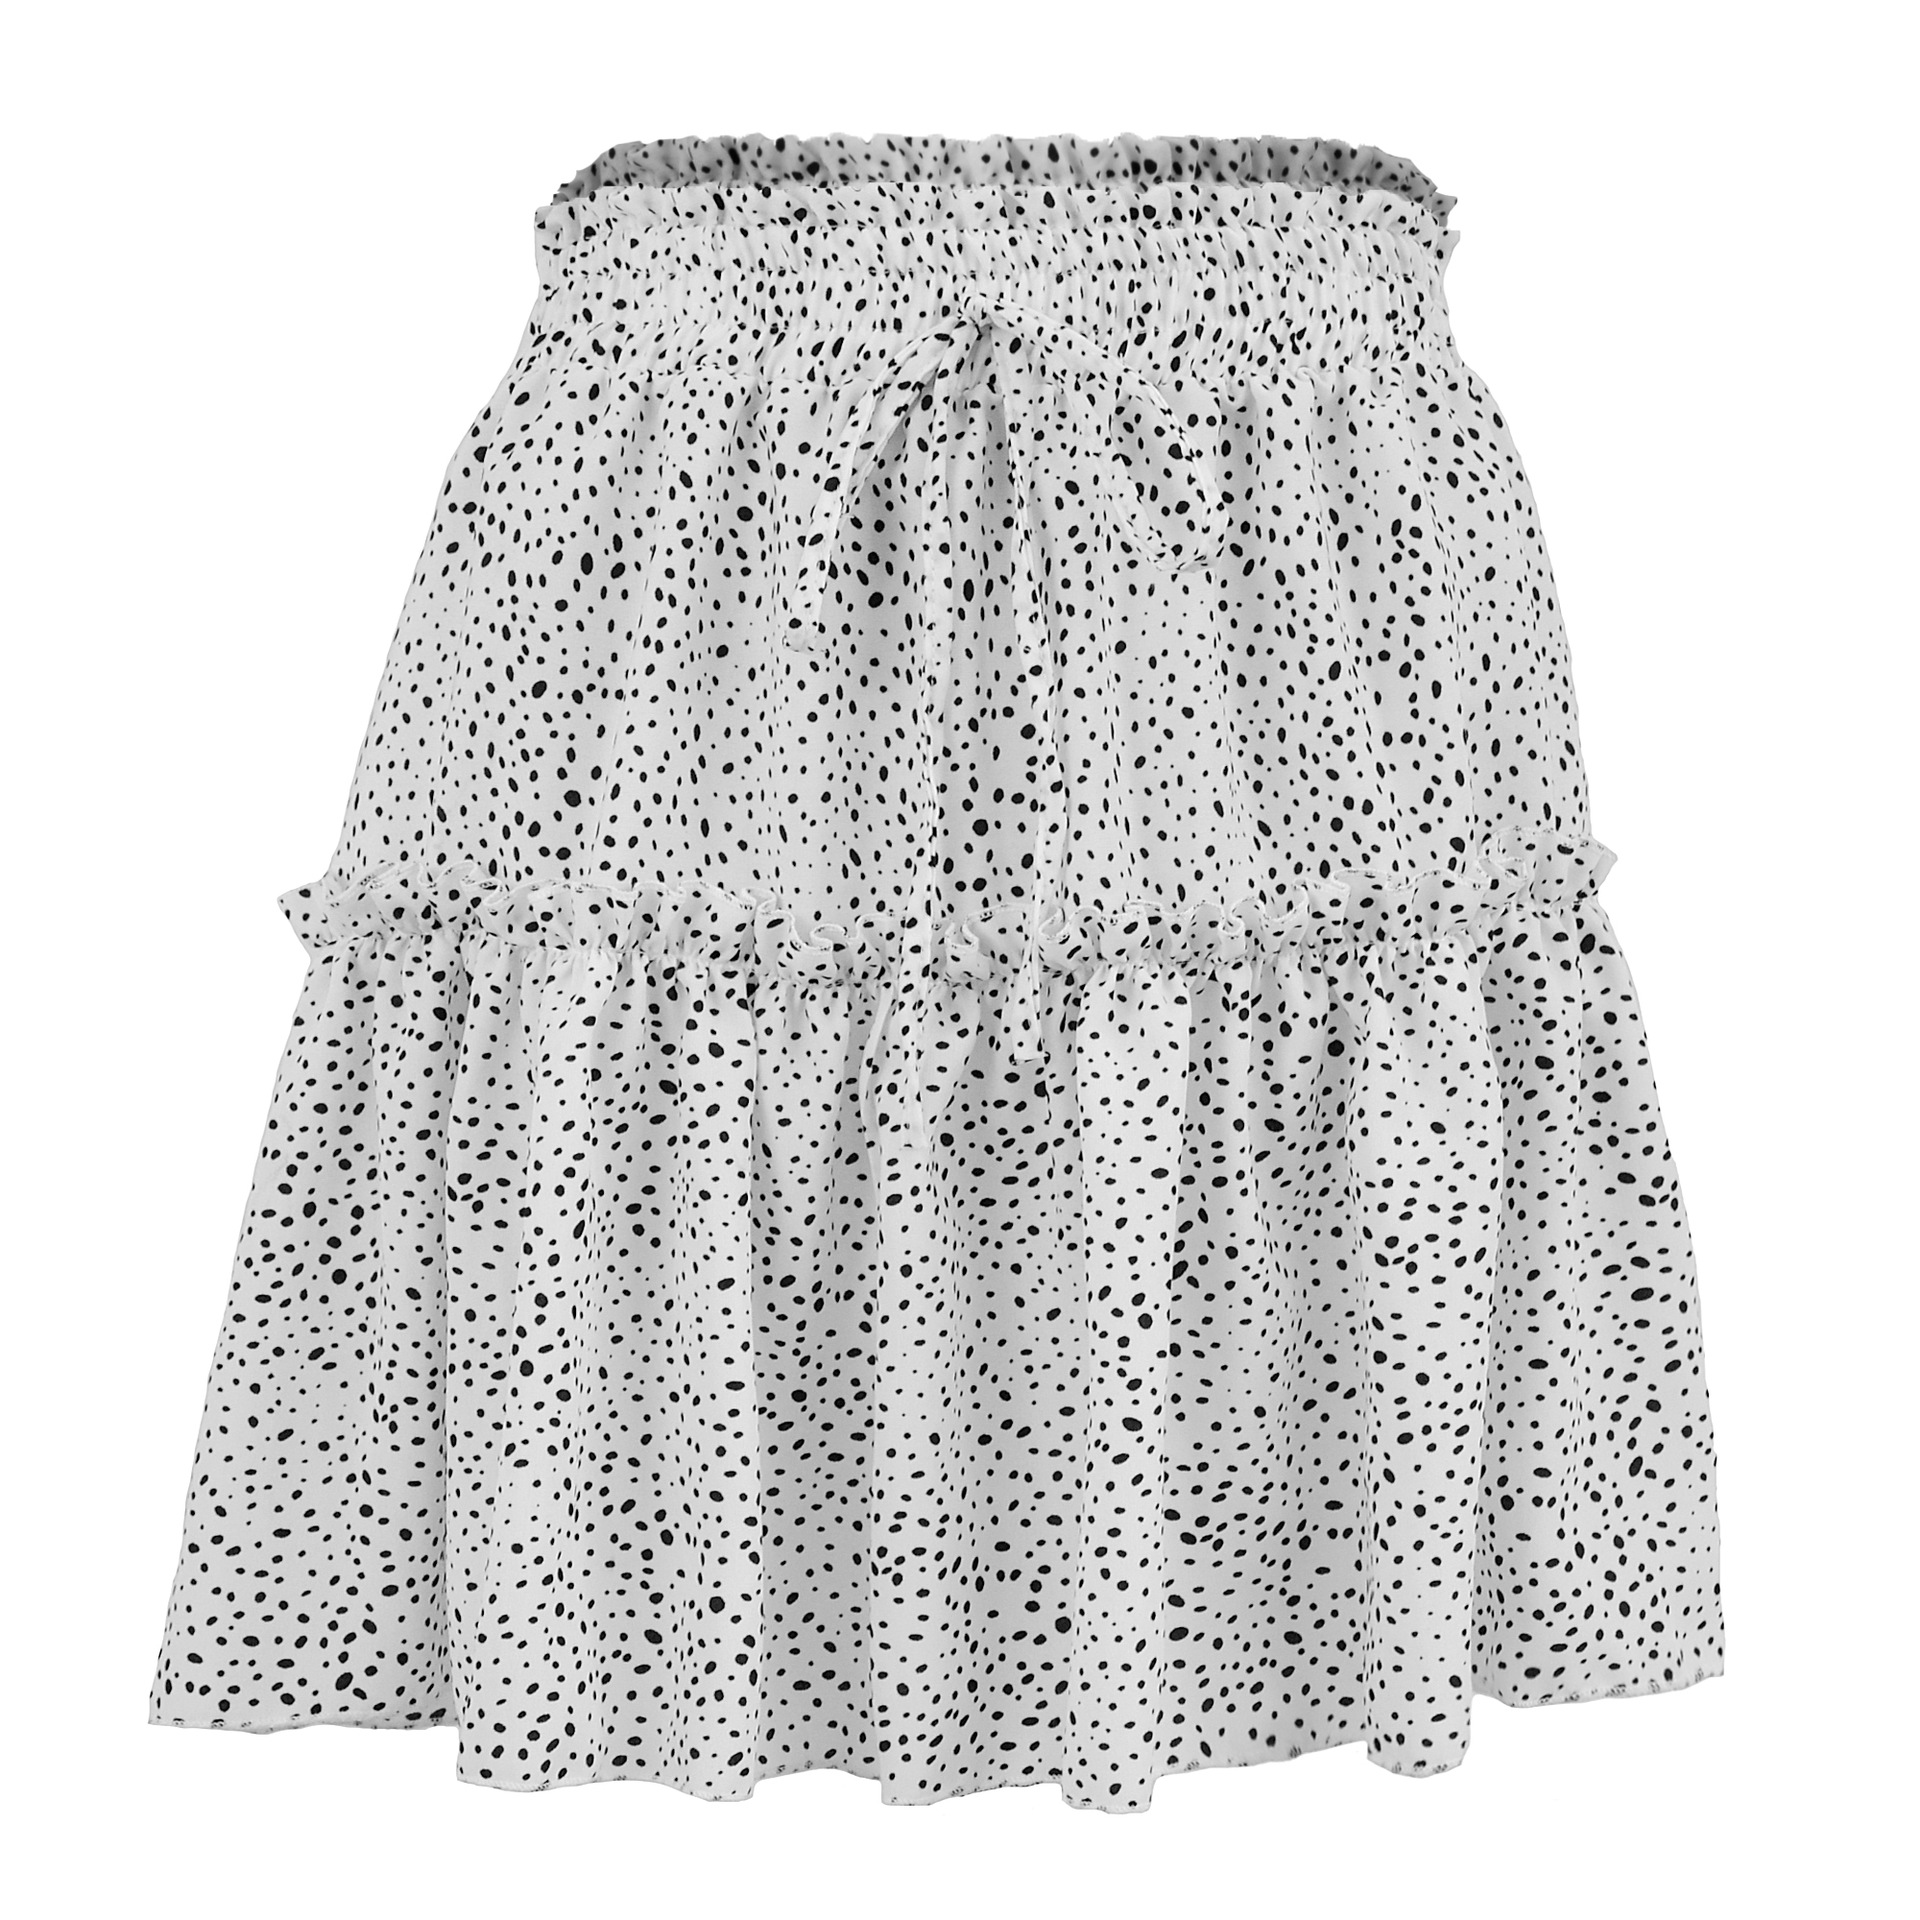 Women Dot Skirt Ladies Elastic Waist Chiffon Casual A-Line Above Knee Mini Empire Skirts